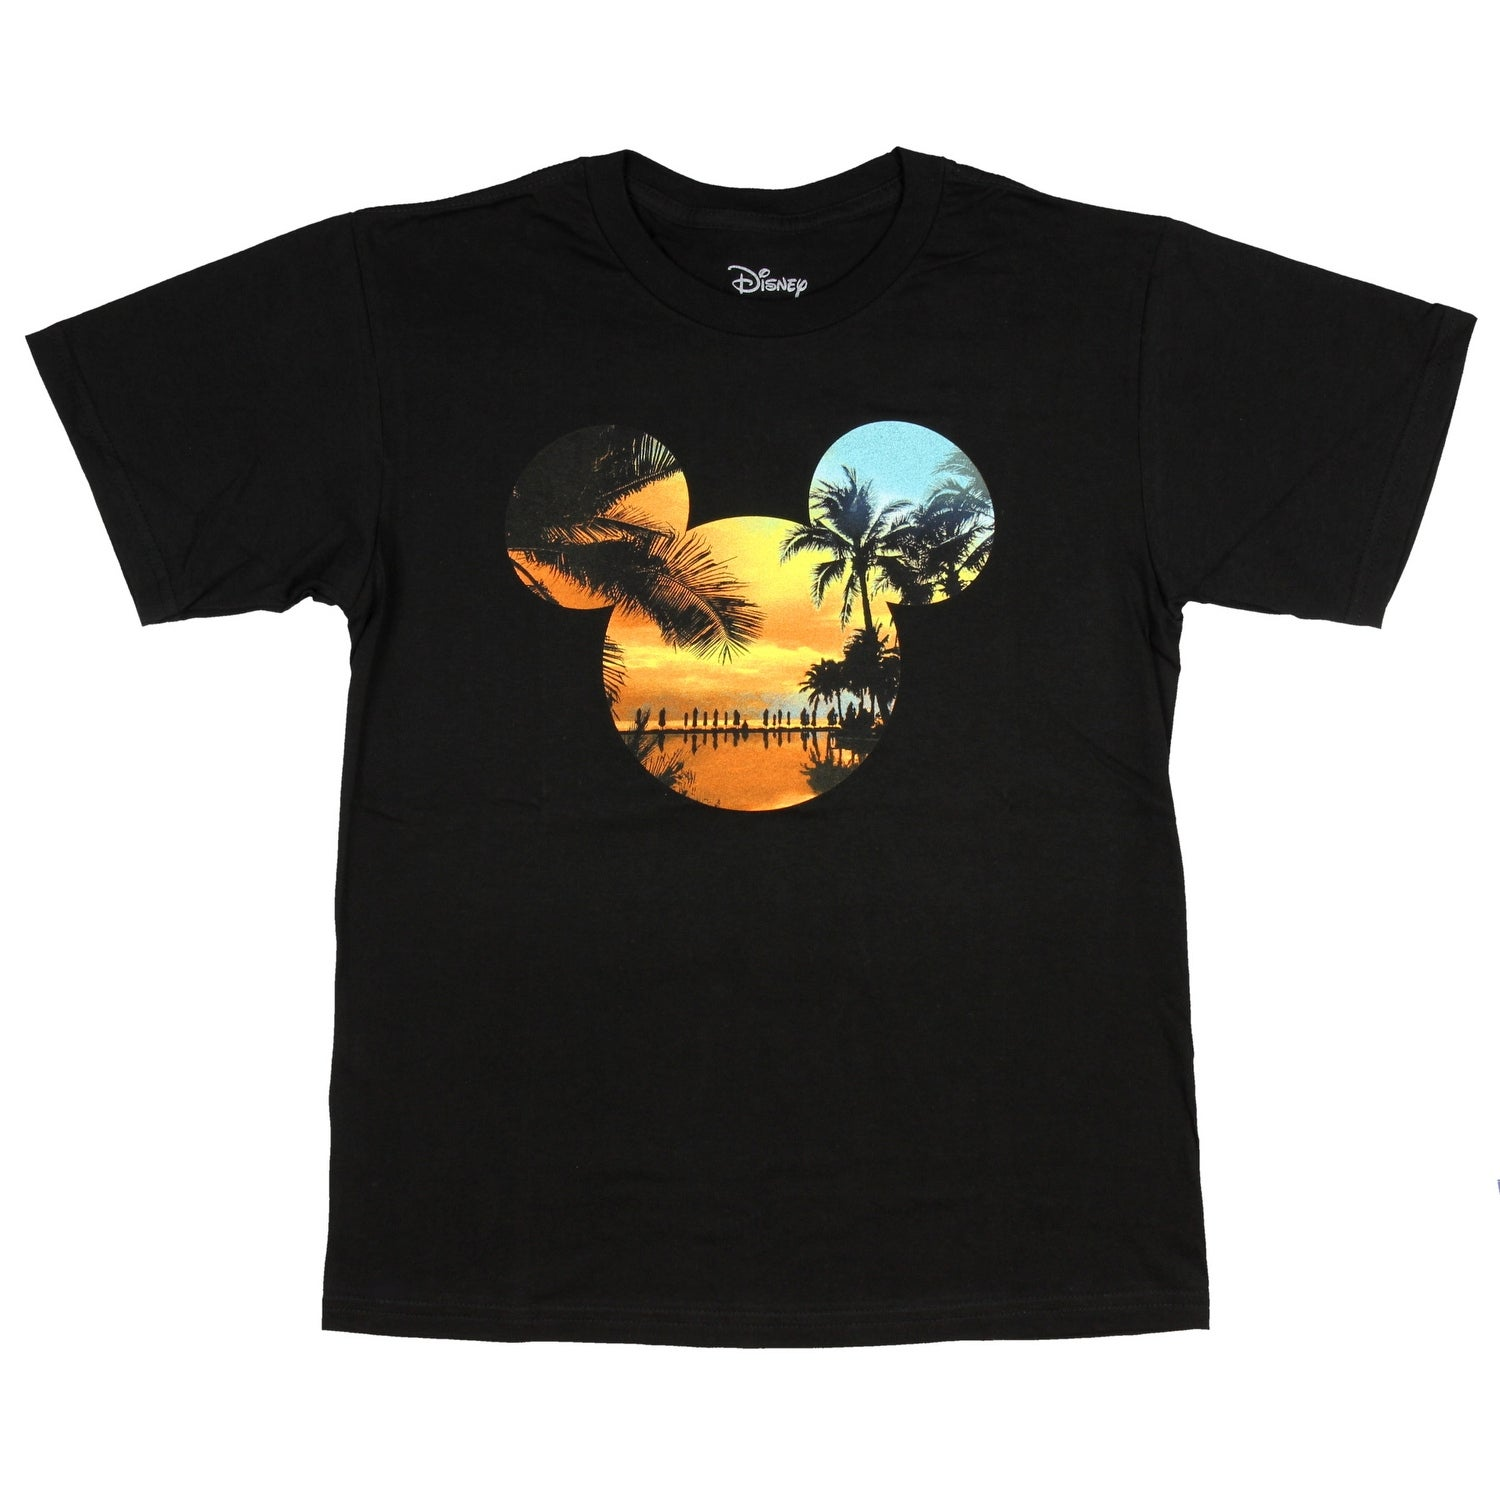 8748b25cb Shop Disney Men's Mickey Mouse Tropical Island Sunset Head Logo T-Shirt -  Free Shipping On Orders Over $45 - Overstock - 23446701